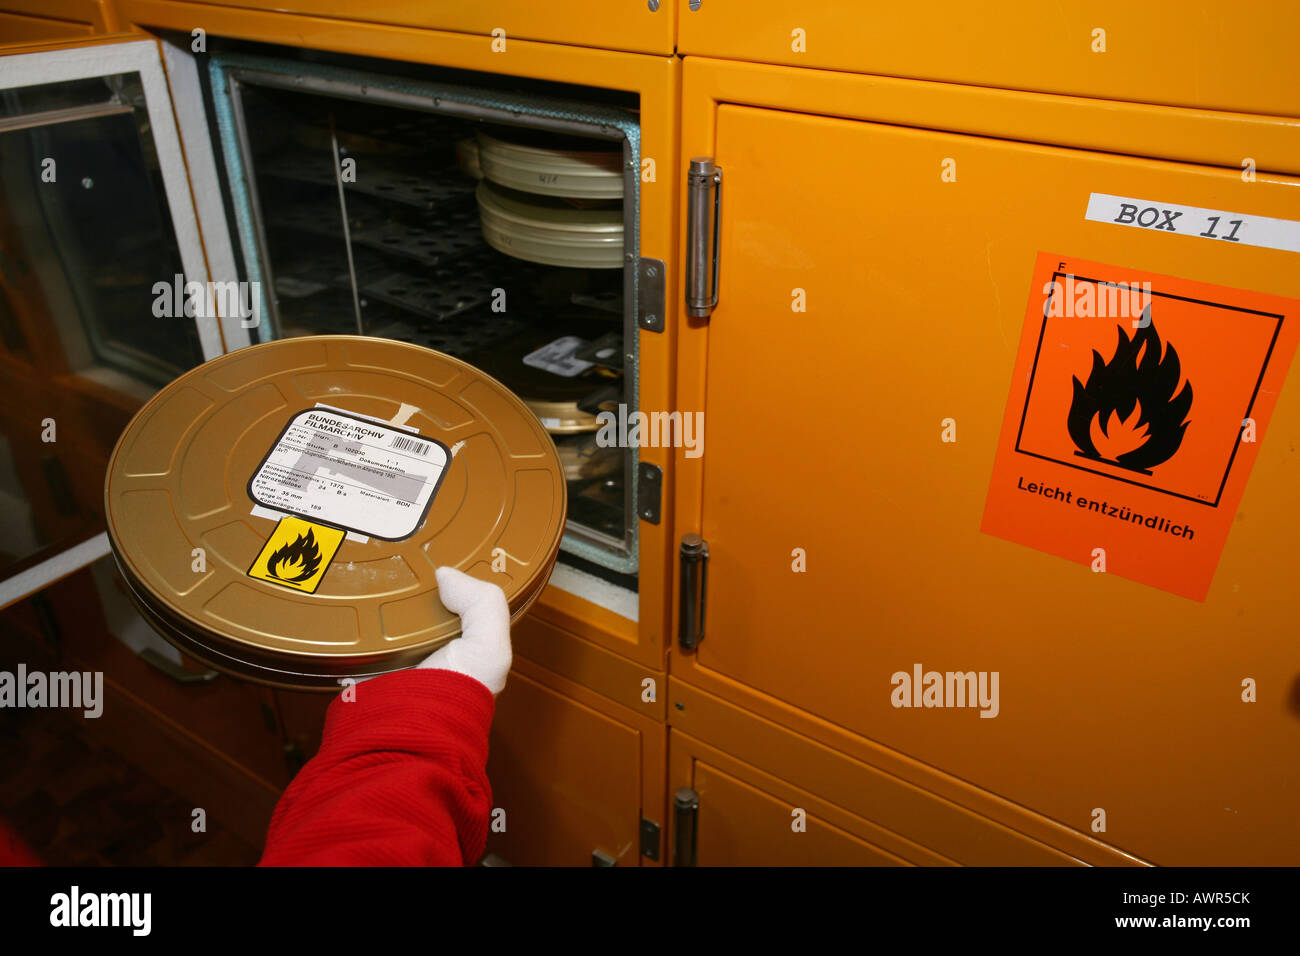 Easily inflammable film reel treasured in a safe at the Bundesarchiv Koblenz Rhineland-Palatinate Germany - Stock Image